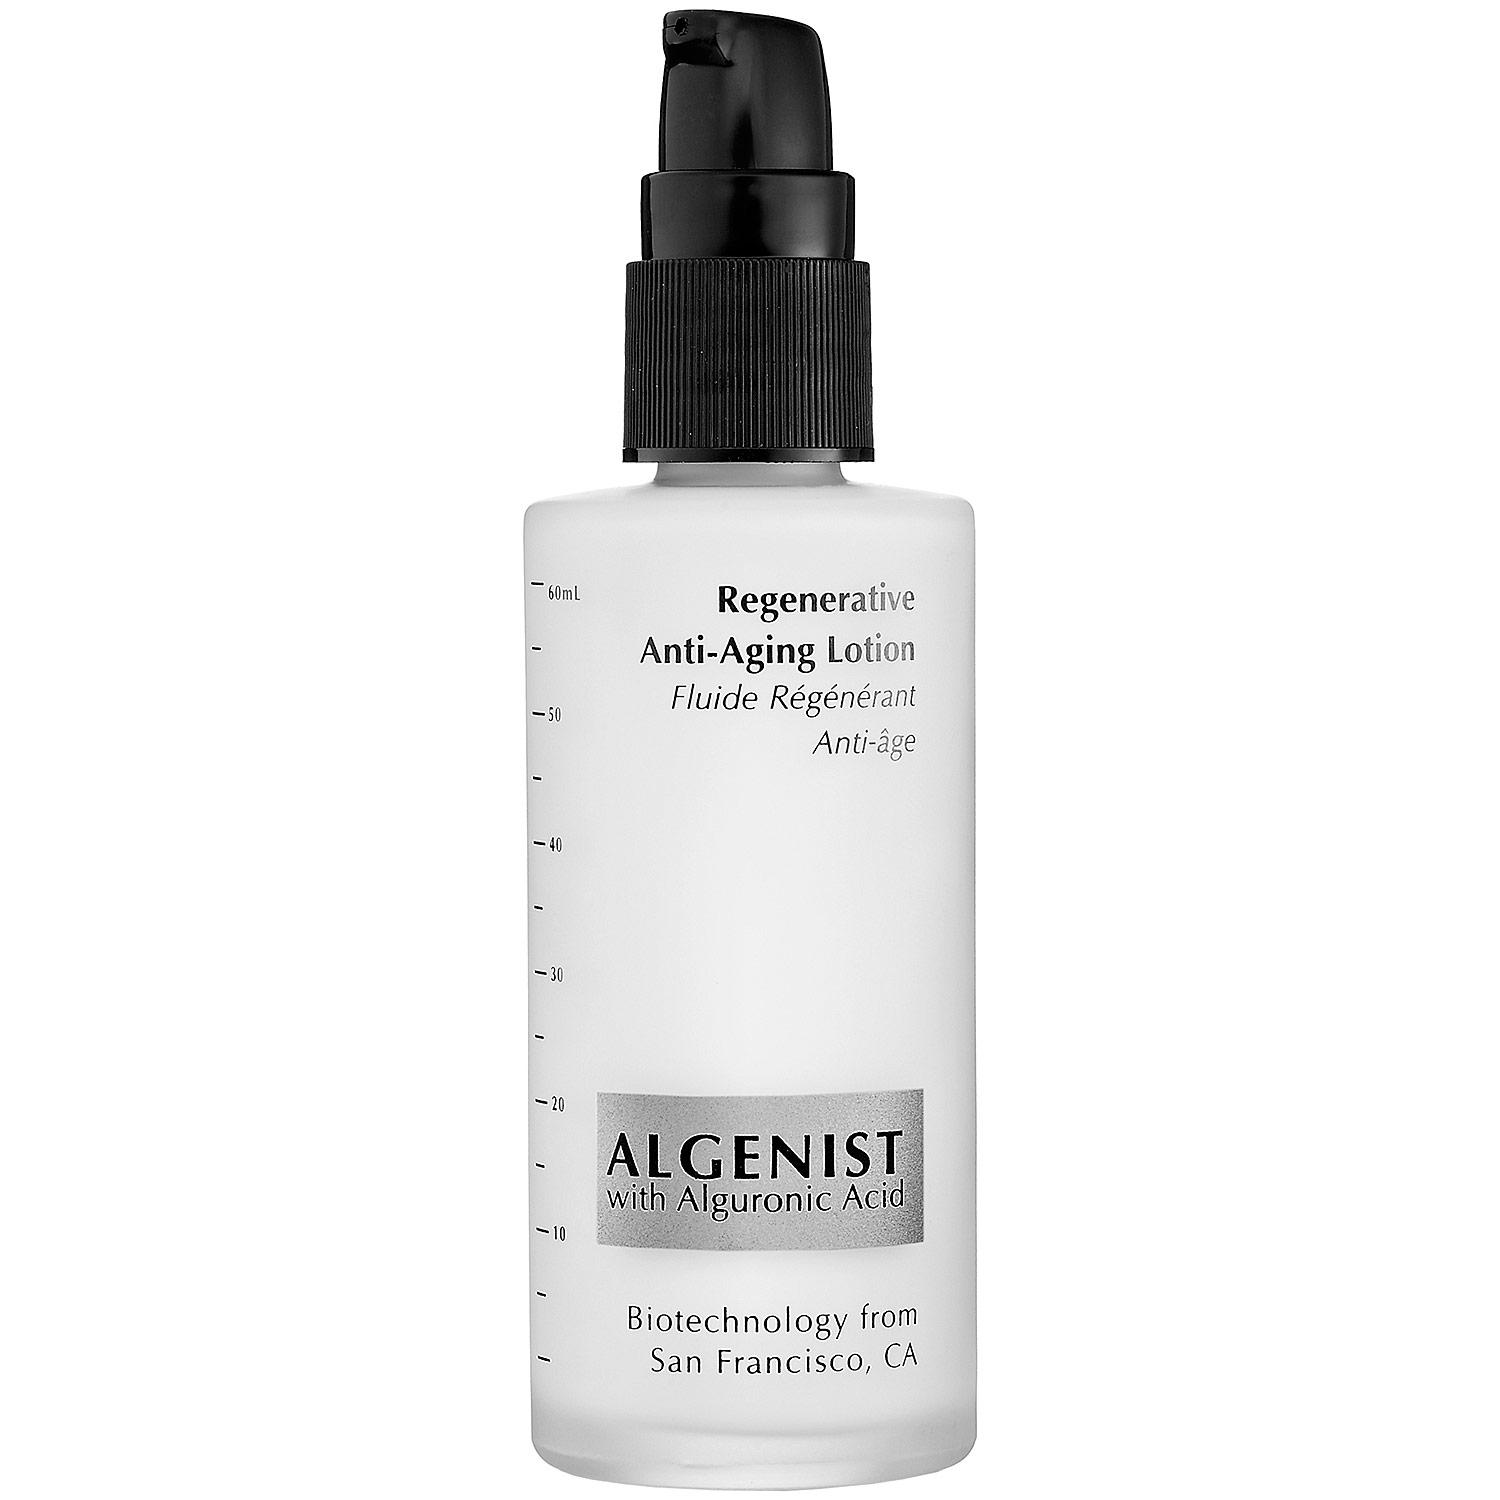 Regenerative Anti-Aging Lotion